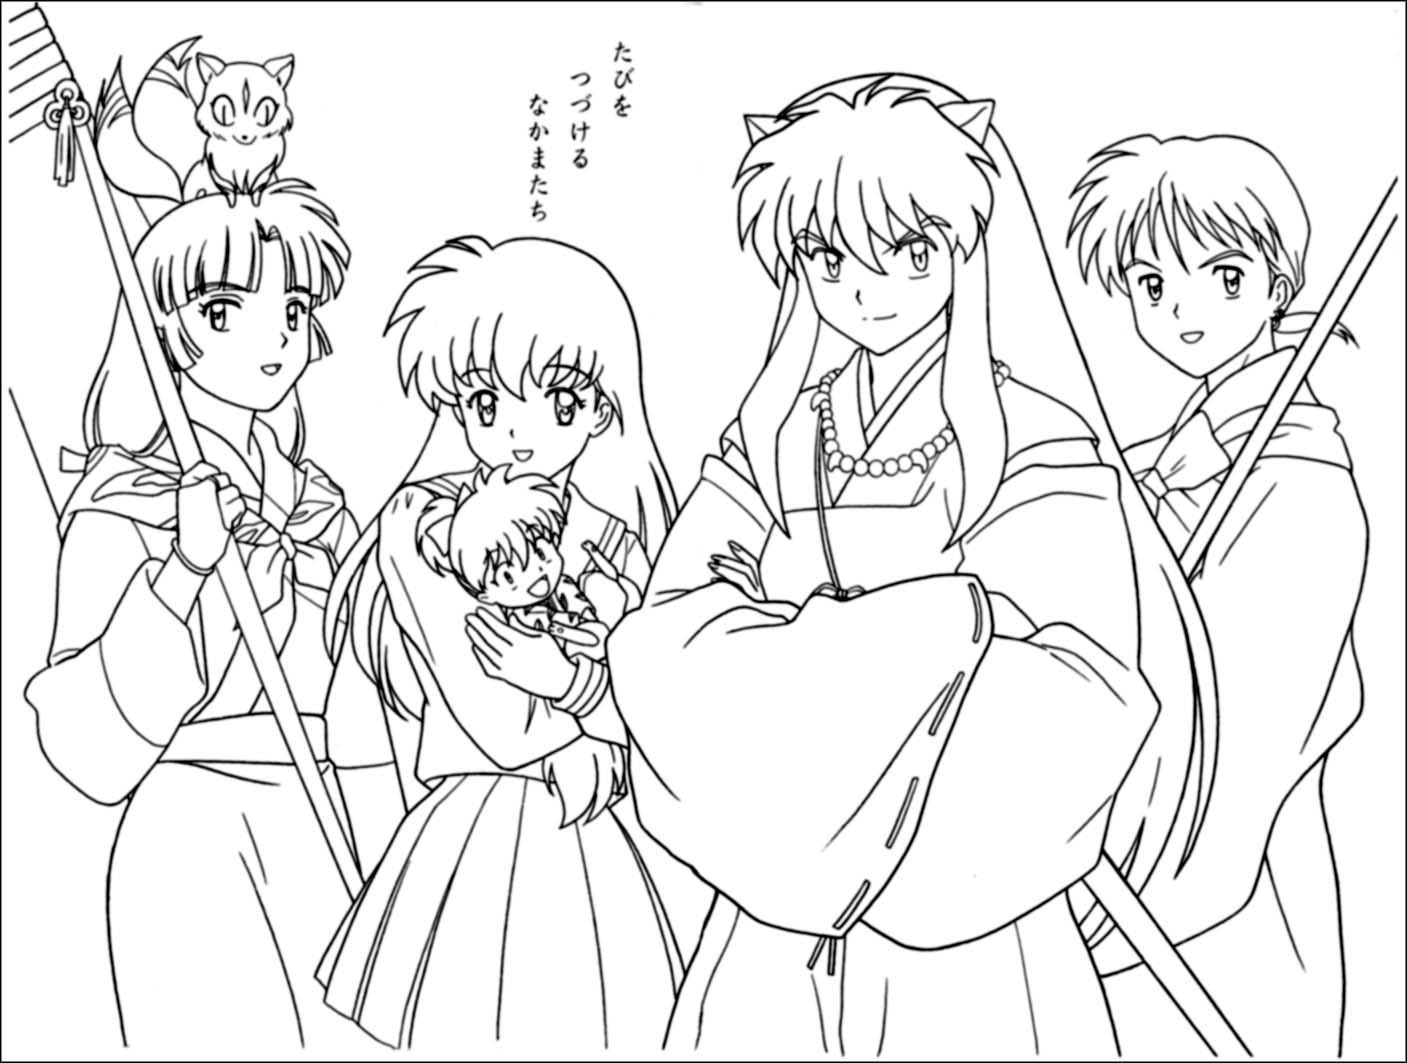 group of girls coloring pages best friends lineart by theultimateangel on deviantart of girls coloring pages group